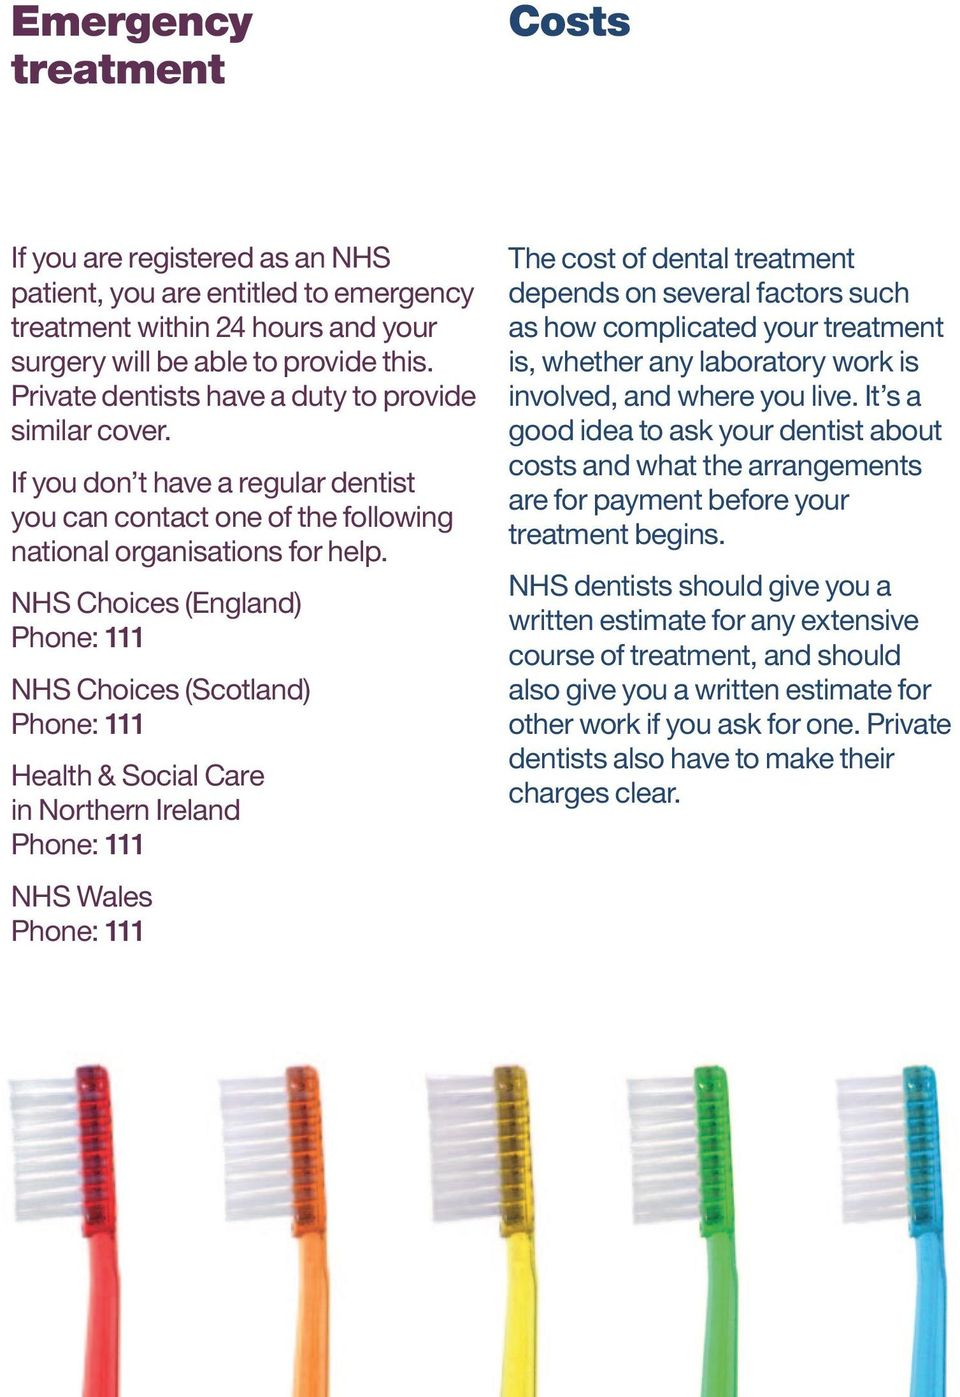 NHS Choices (England) Phone: 111 NHS Choices (Scotland) Phone: 111 Health & Social Care in Northern Ireland Phone: 111 NHS Wales Phone: 111 The cost of dental treatment depends on several factors